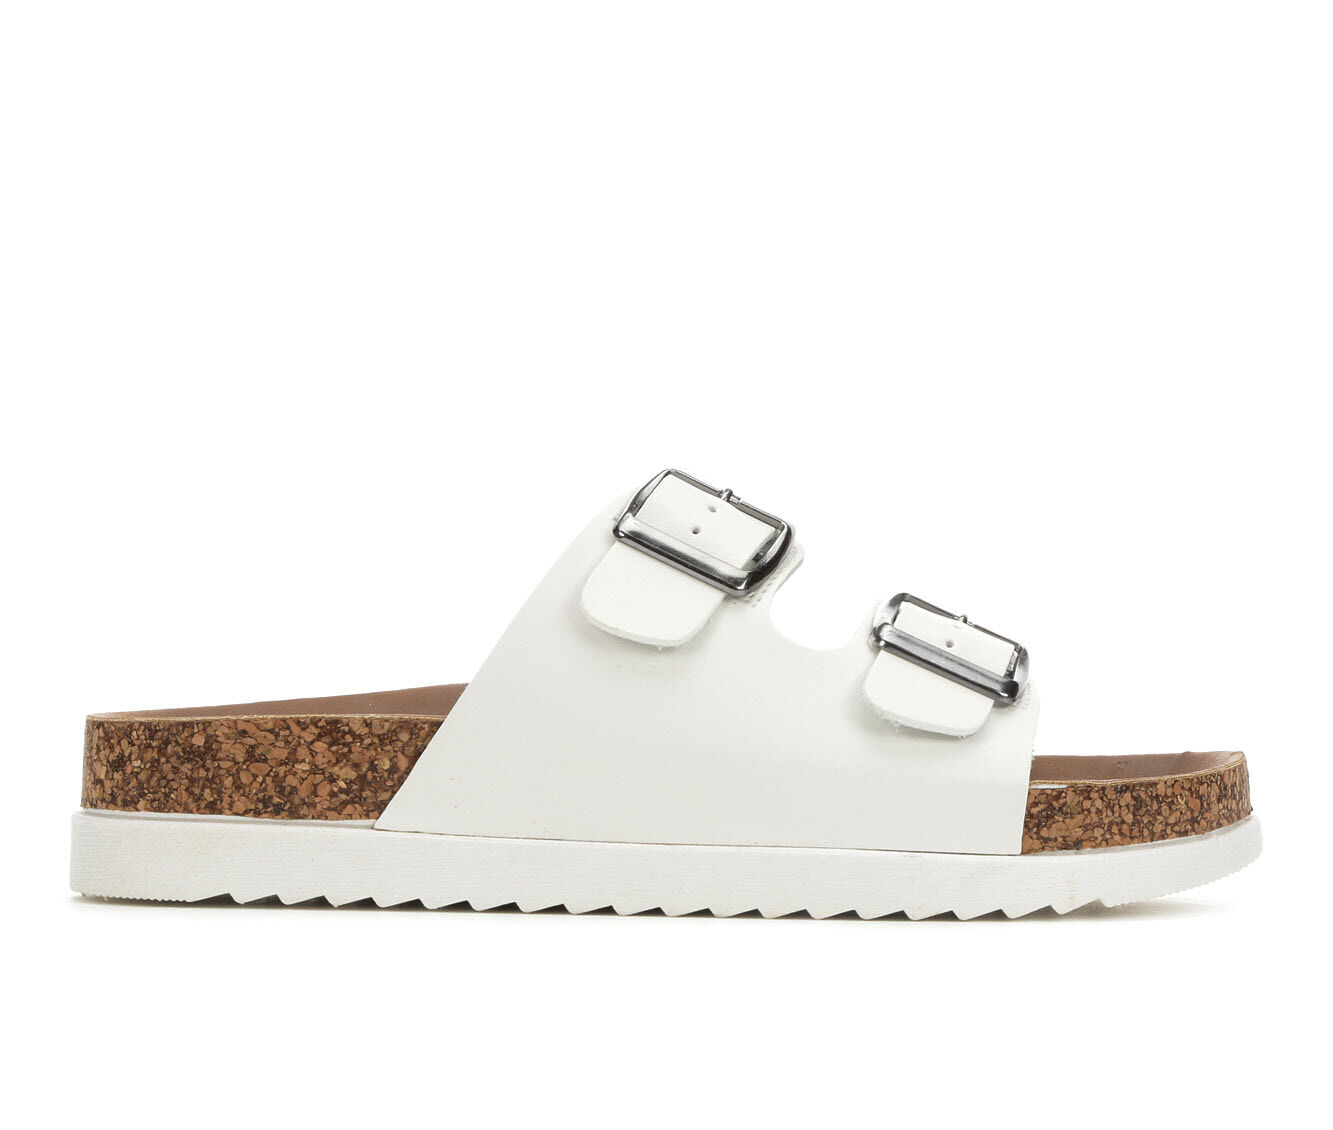 Women's Madden Girl Goldie Footbed Sandals White